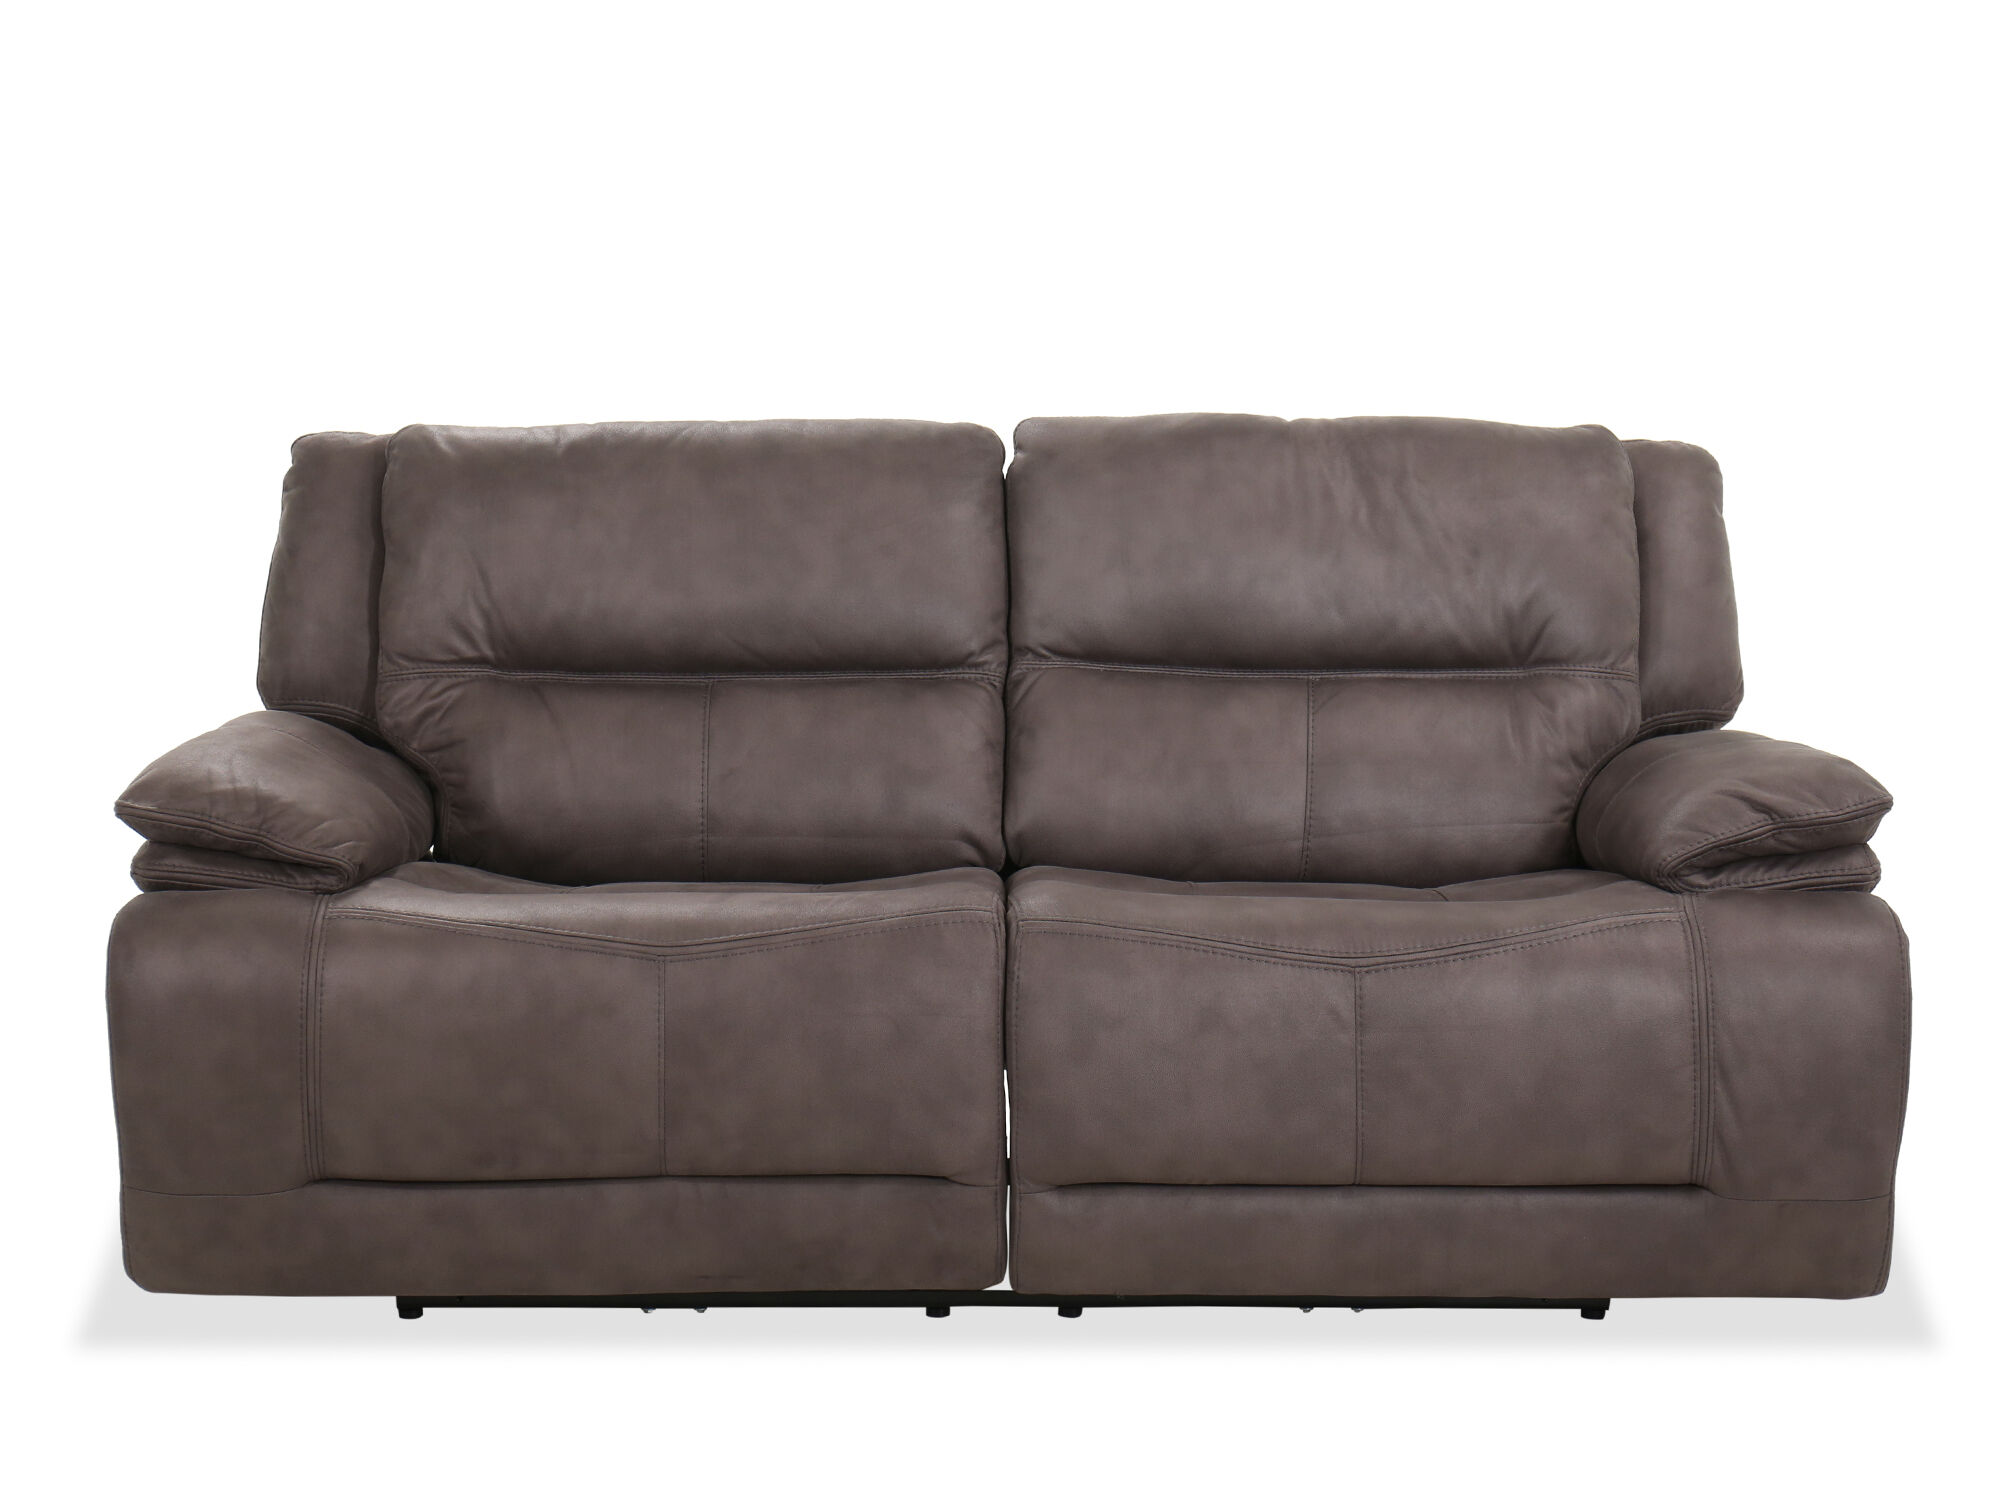 Contemporary Power Reclining Sofa In Gray Mathis Brothers Furniture